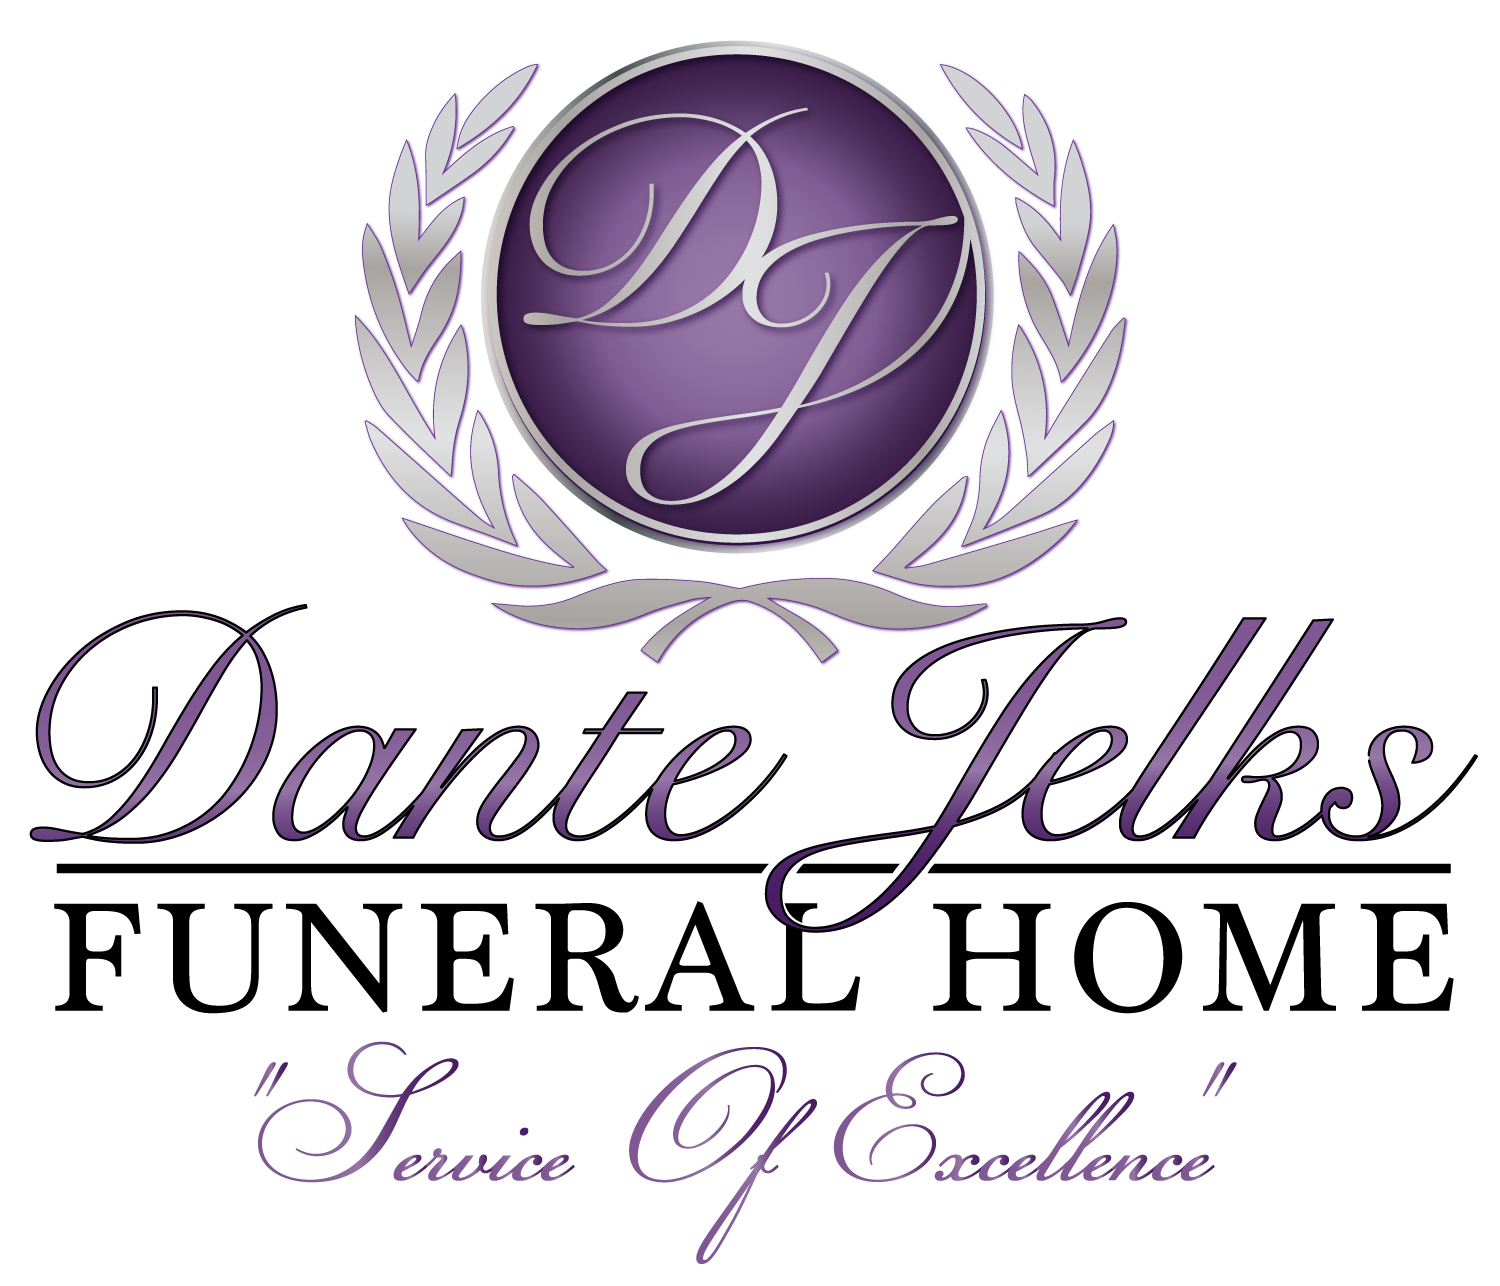 Alabama's Top Rated Local® Funeral Homes & Services Award Winner: Dante Jelks Funeral Home